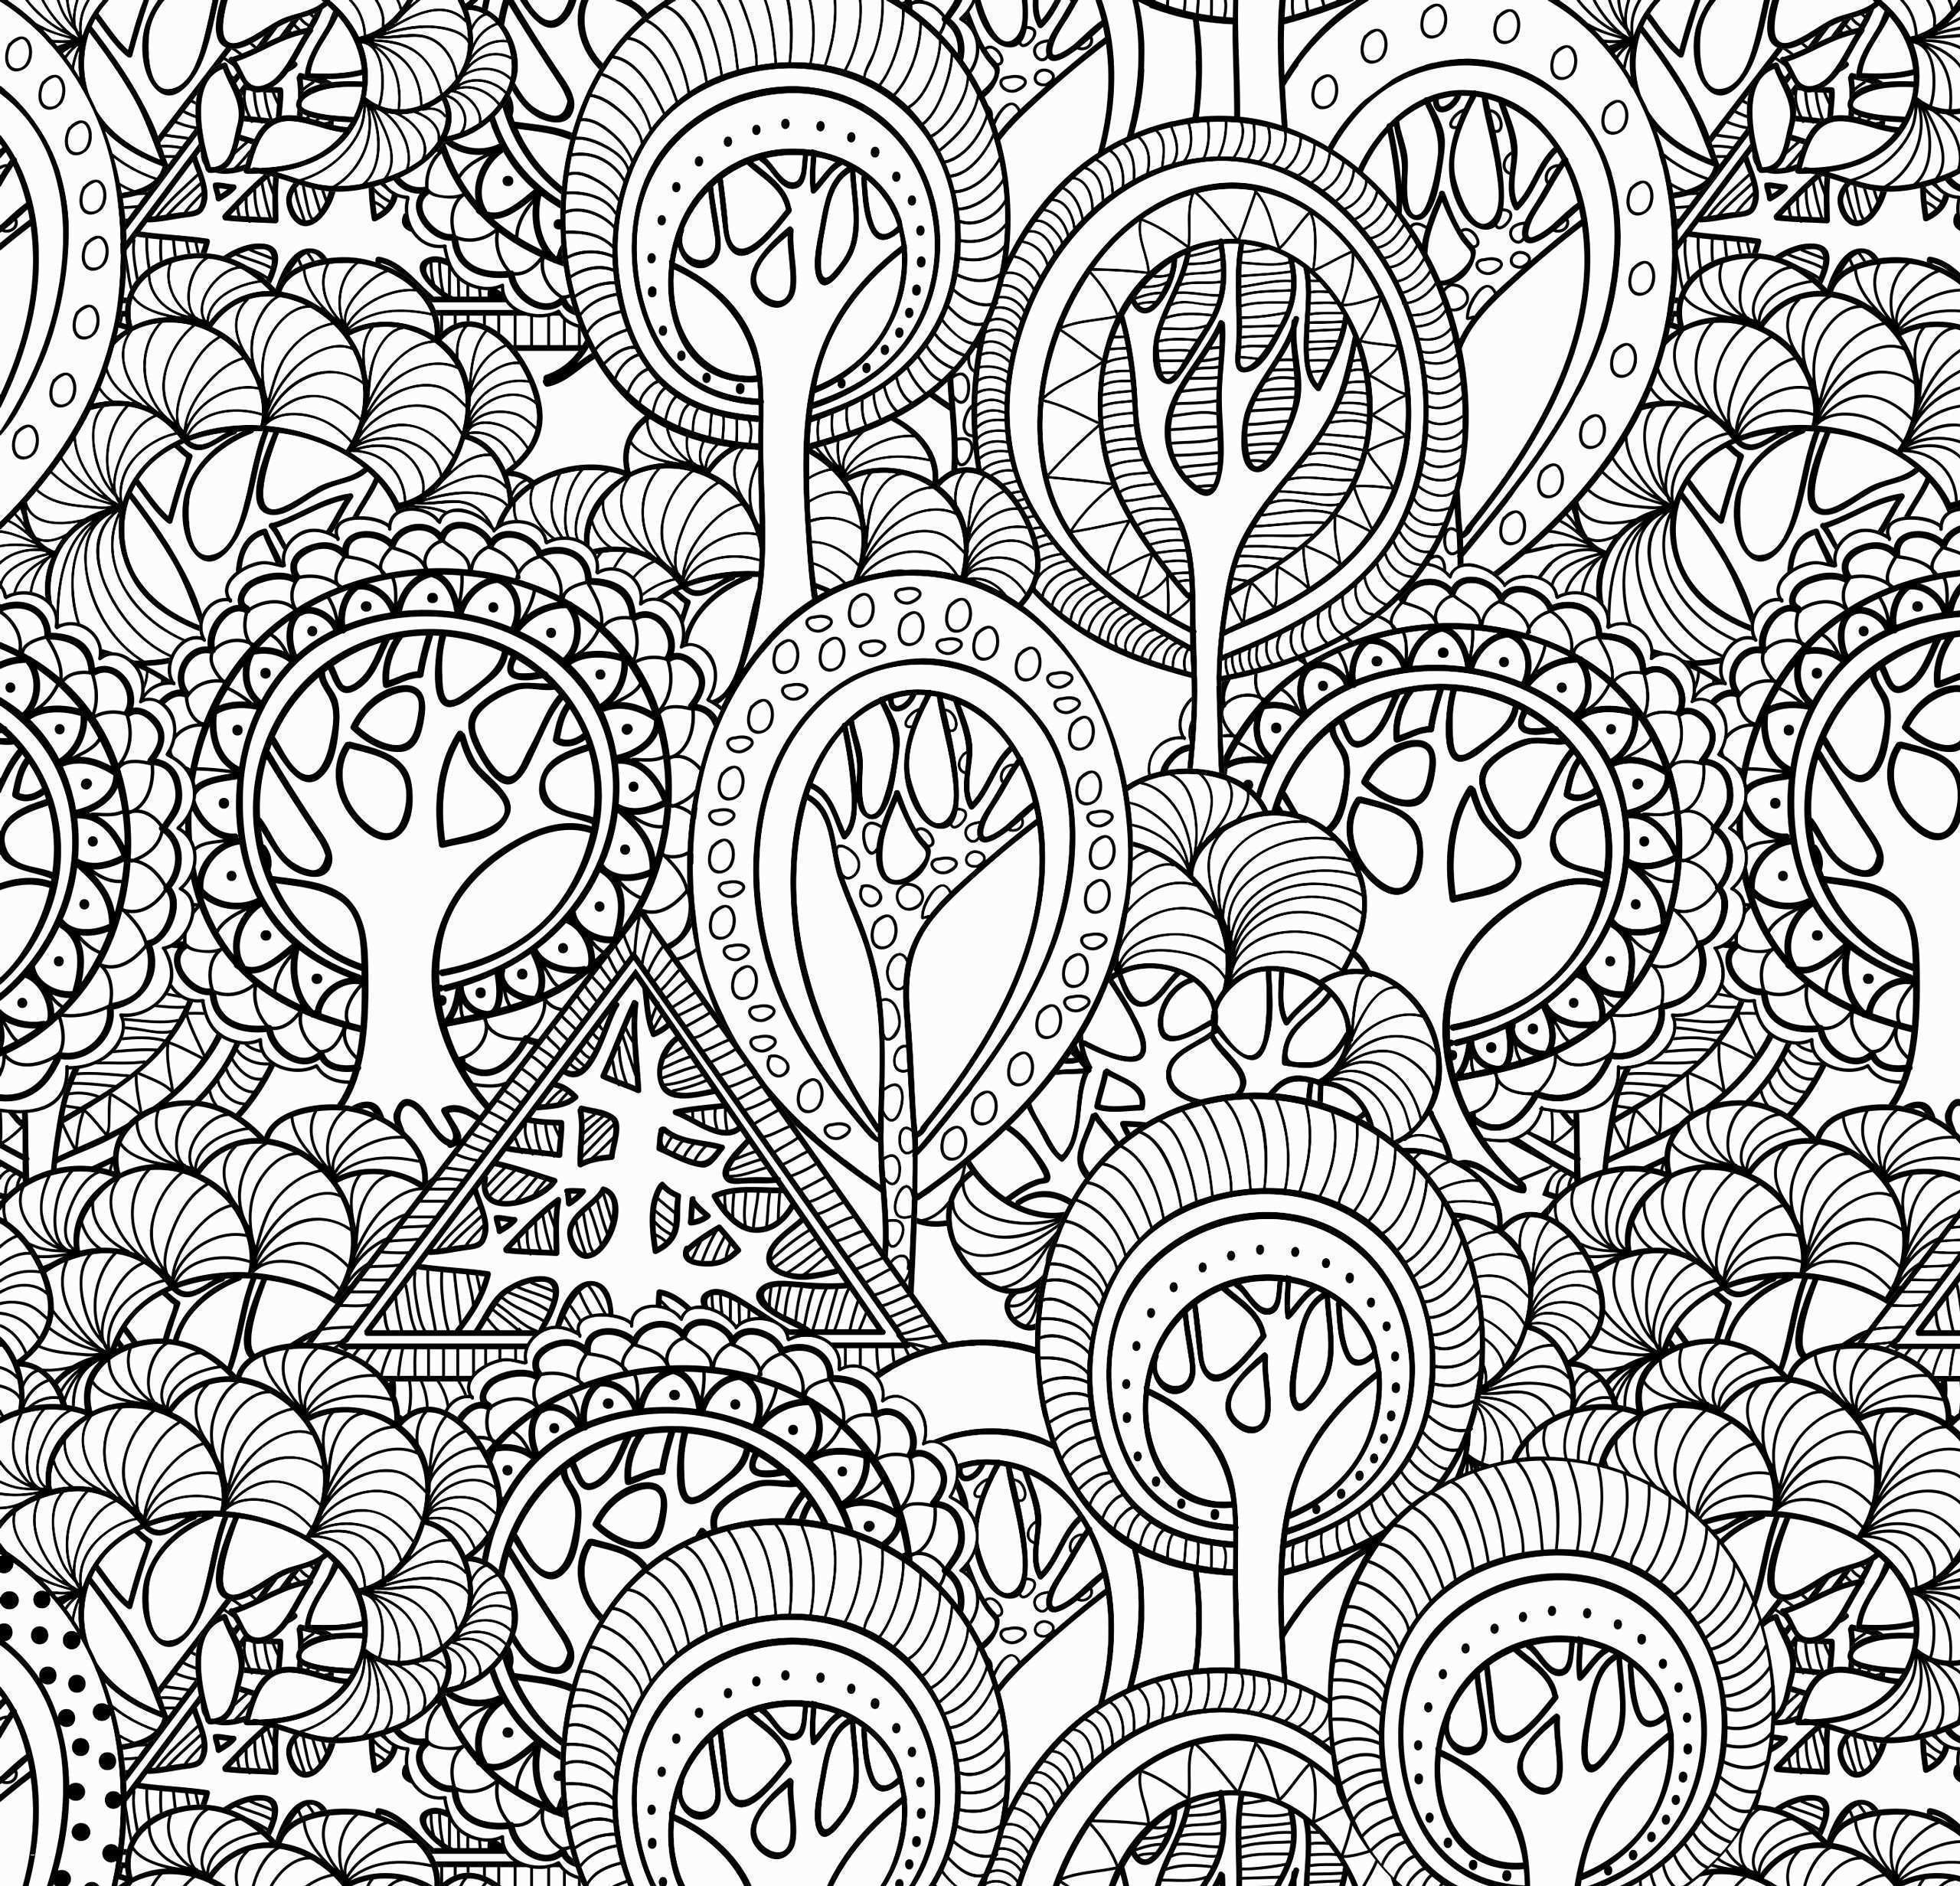 Free Coloring Pages to Print Lovely Free Coloring Pages Elegant